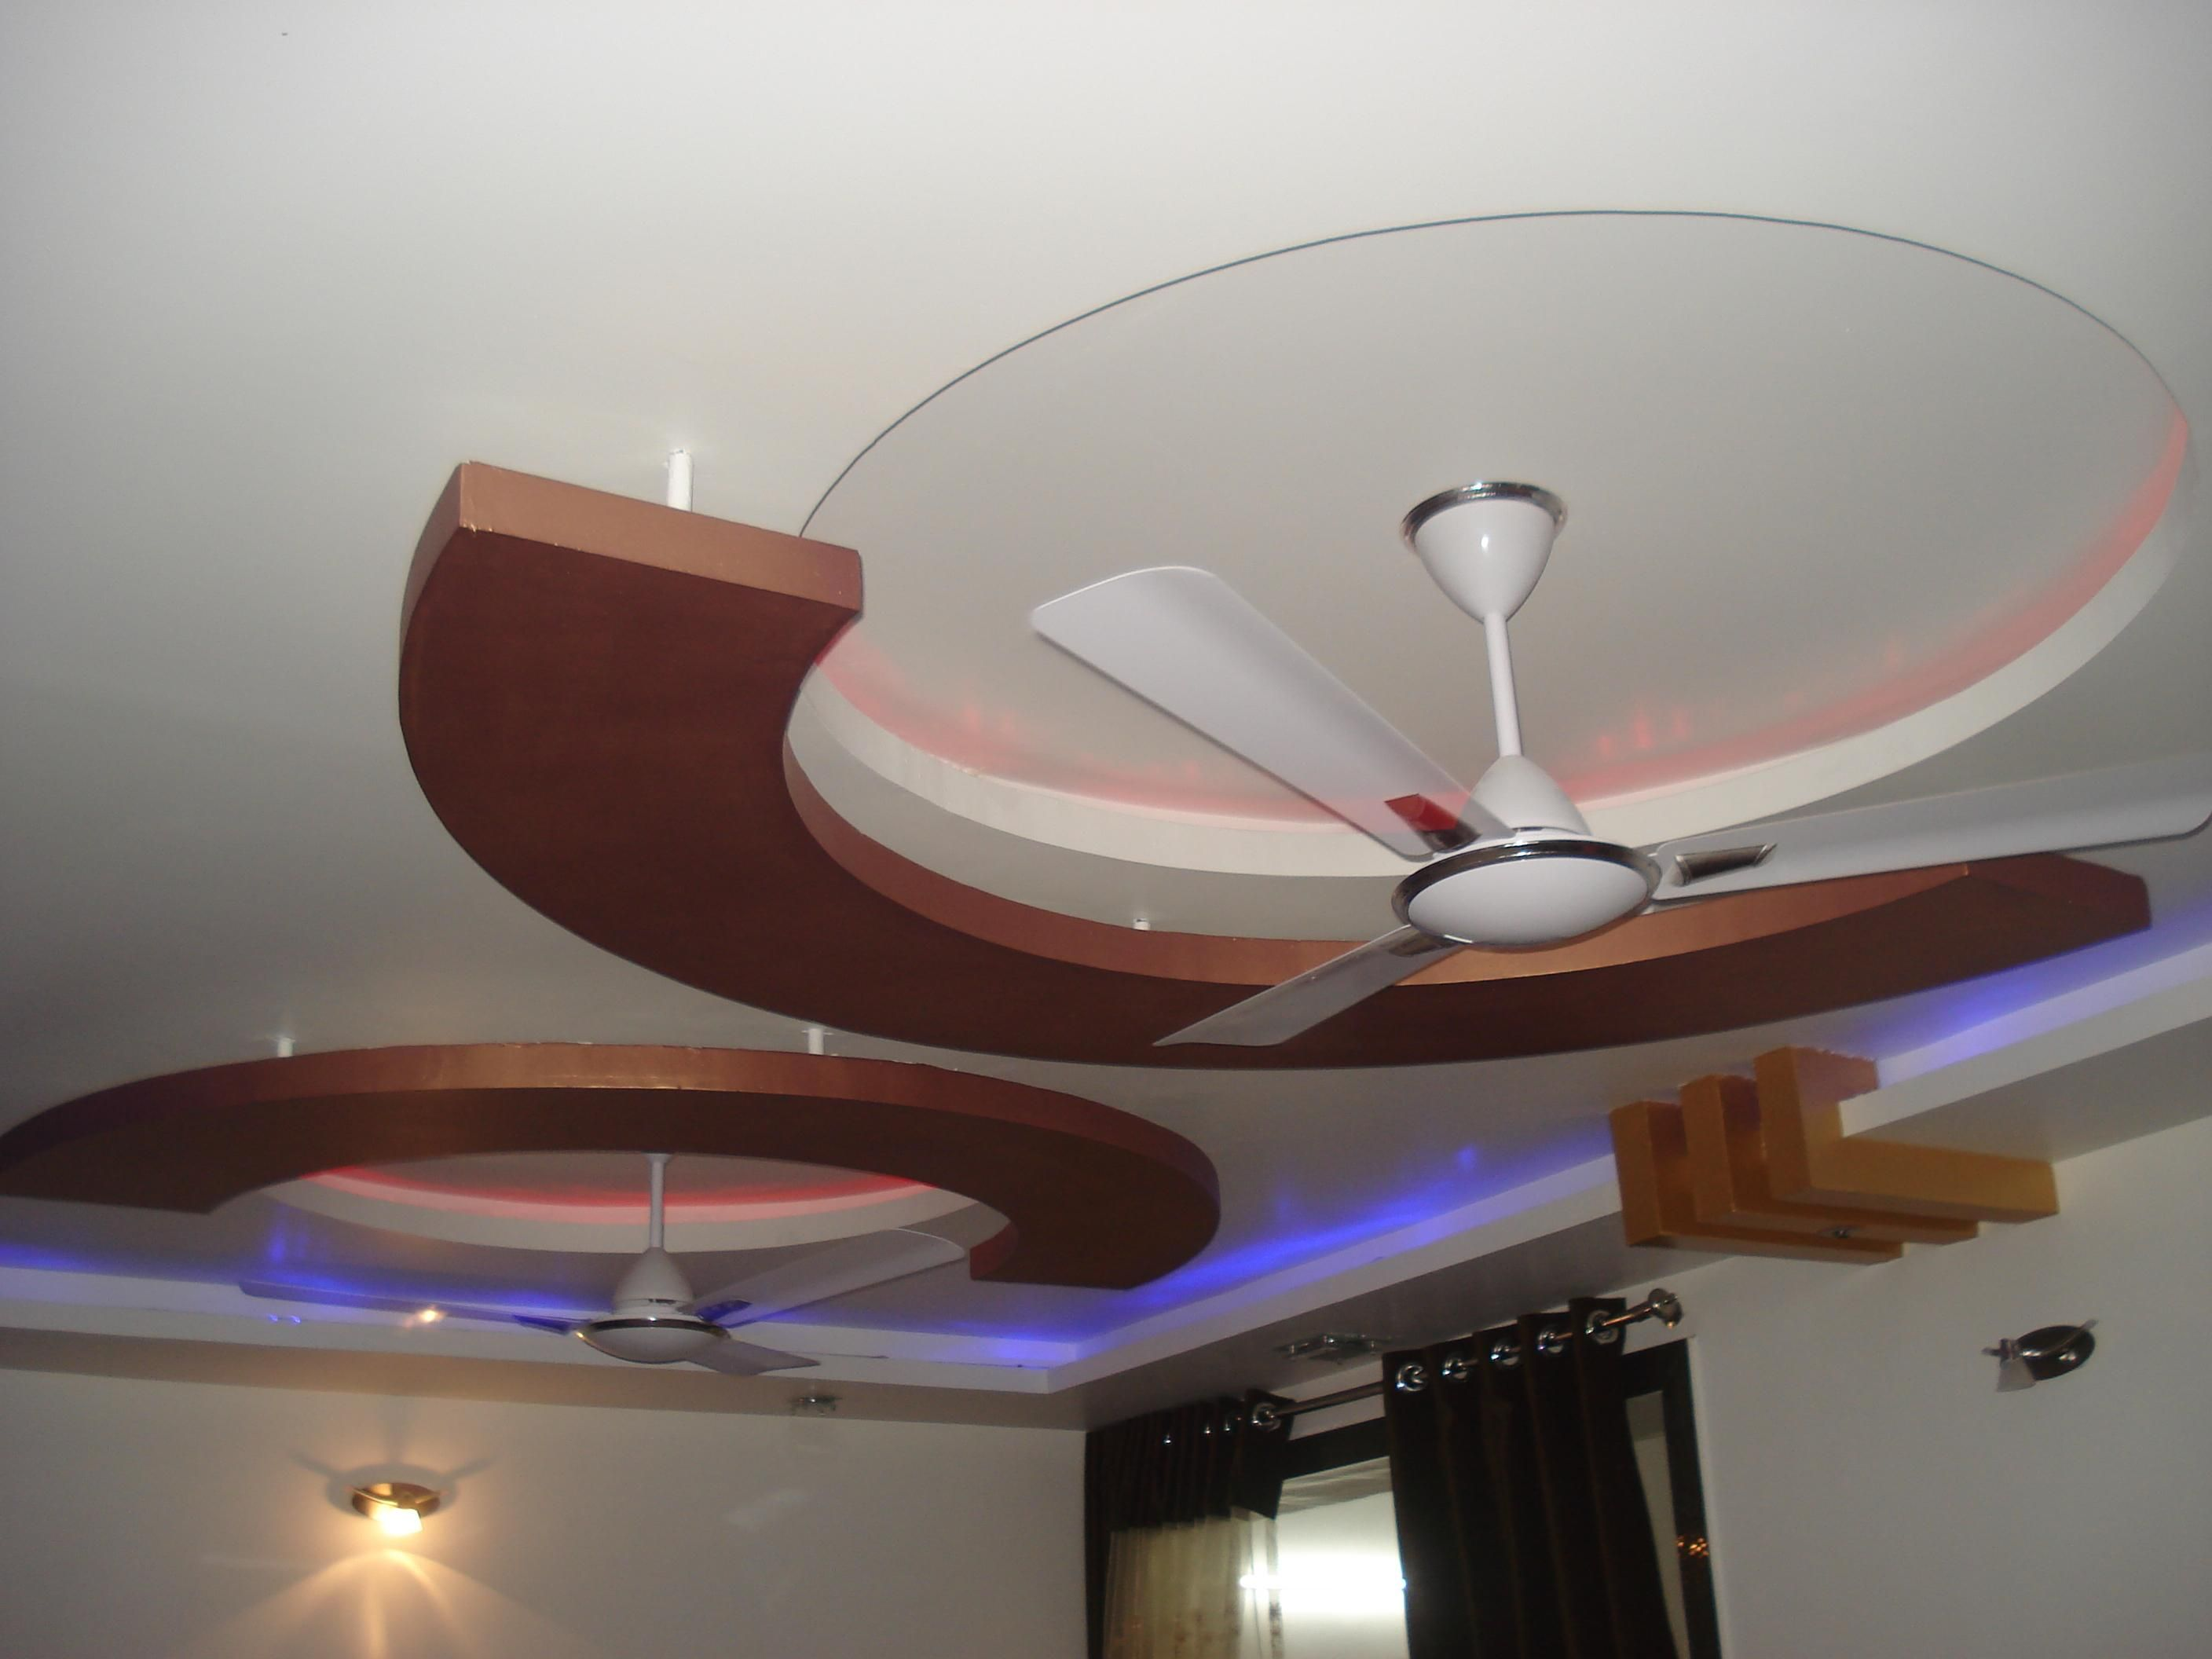 Pop Ceiling Fan Design For Ceiling Pop And Pop Wall Ceiling